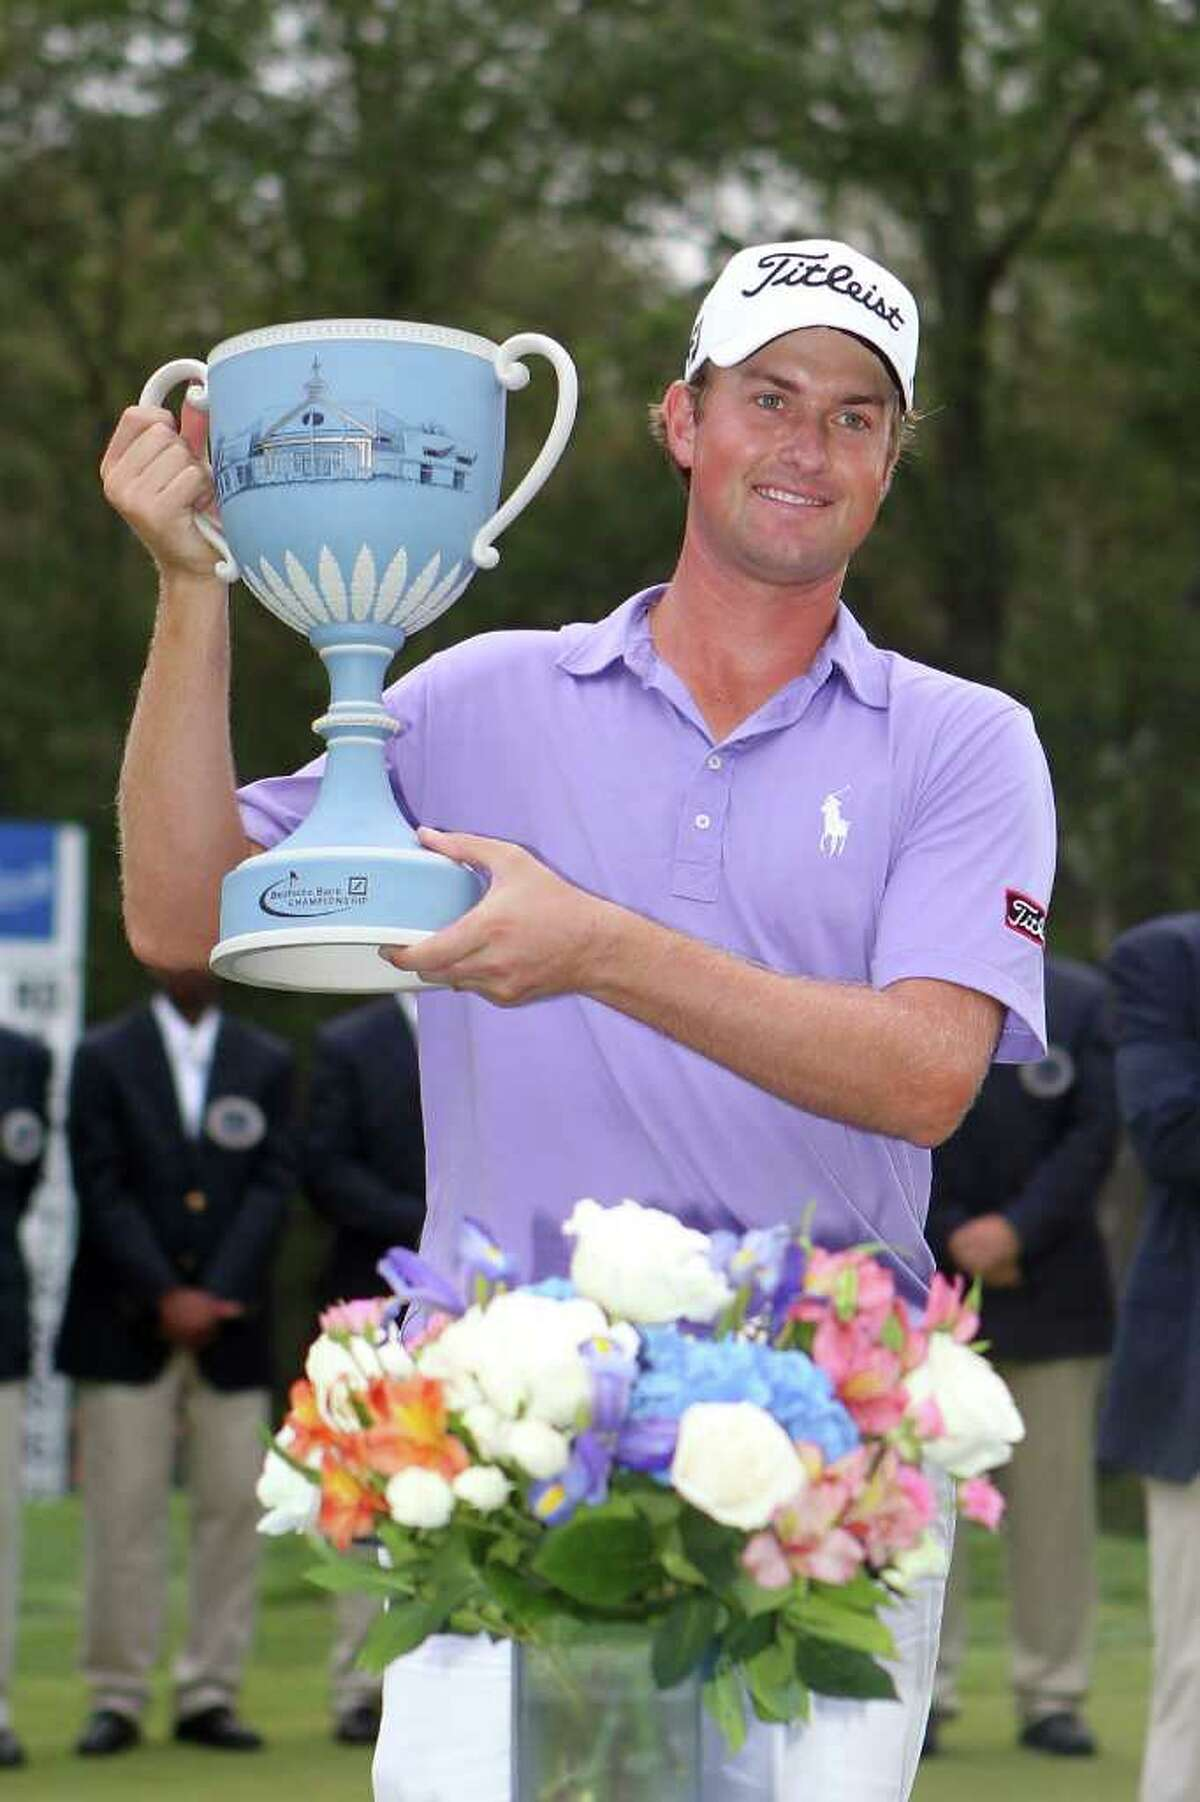 NORTON, MA - SEPTEMBER 05: Webb Simpson poses with the trophy after he won thr tournament following the final round of the Deutsche Bank Championship at TPC Boston on September 5, 2011 in Norton, Massachusetts. (Photo by Jim Rogash/Getty Images)